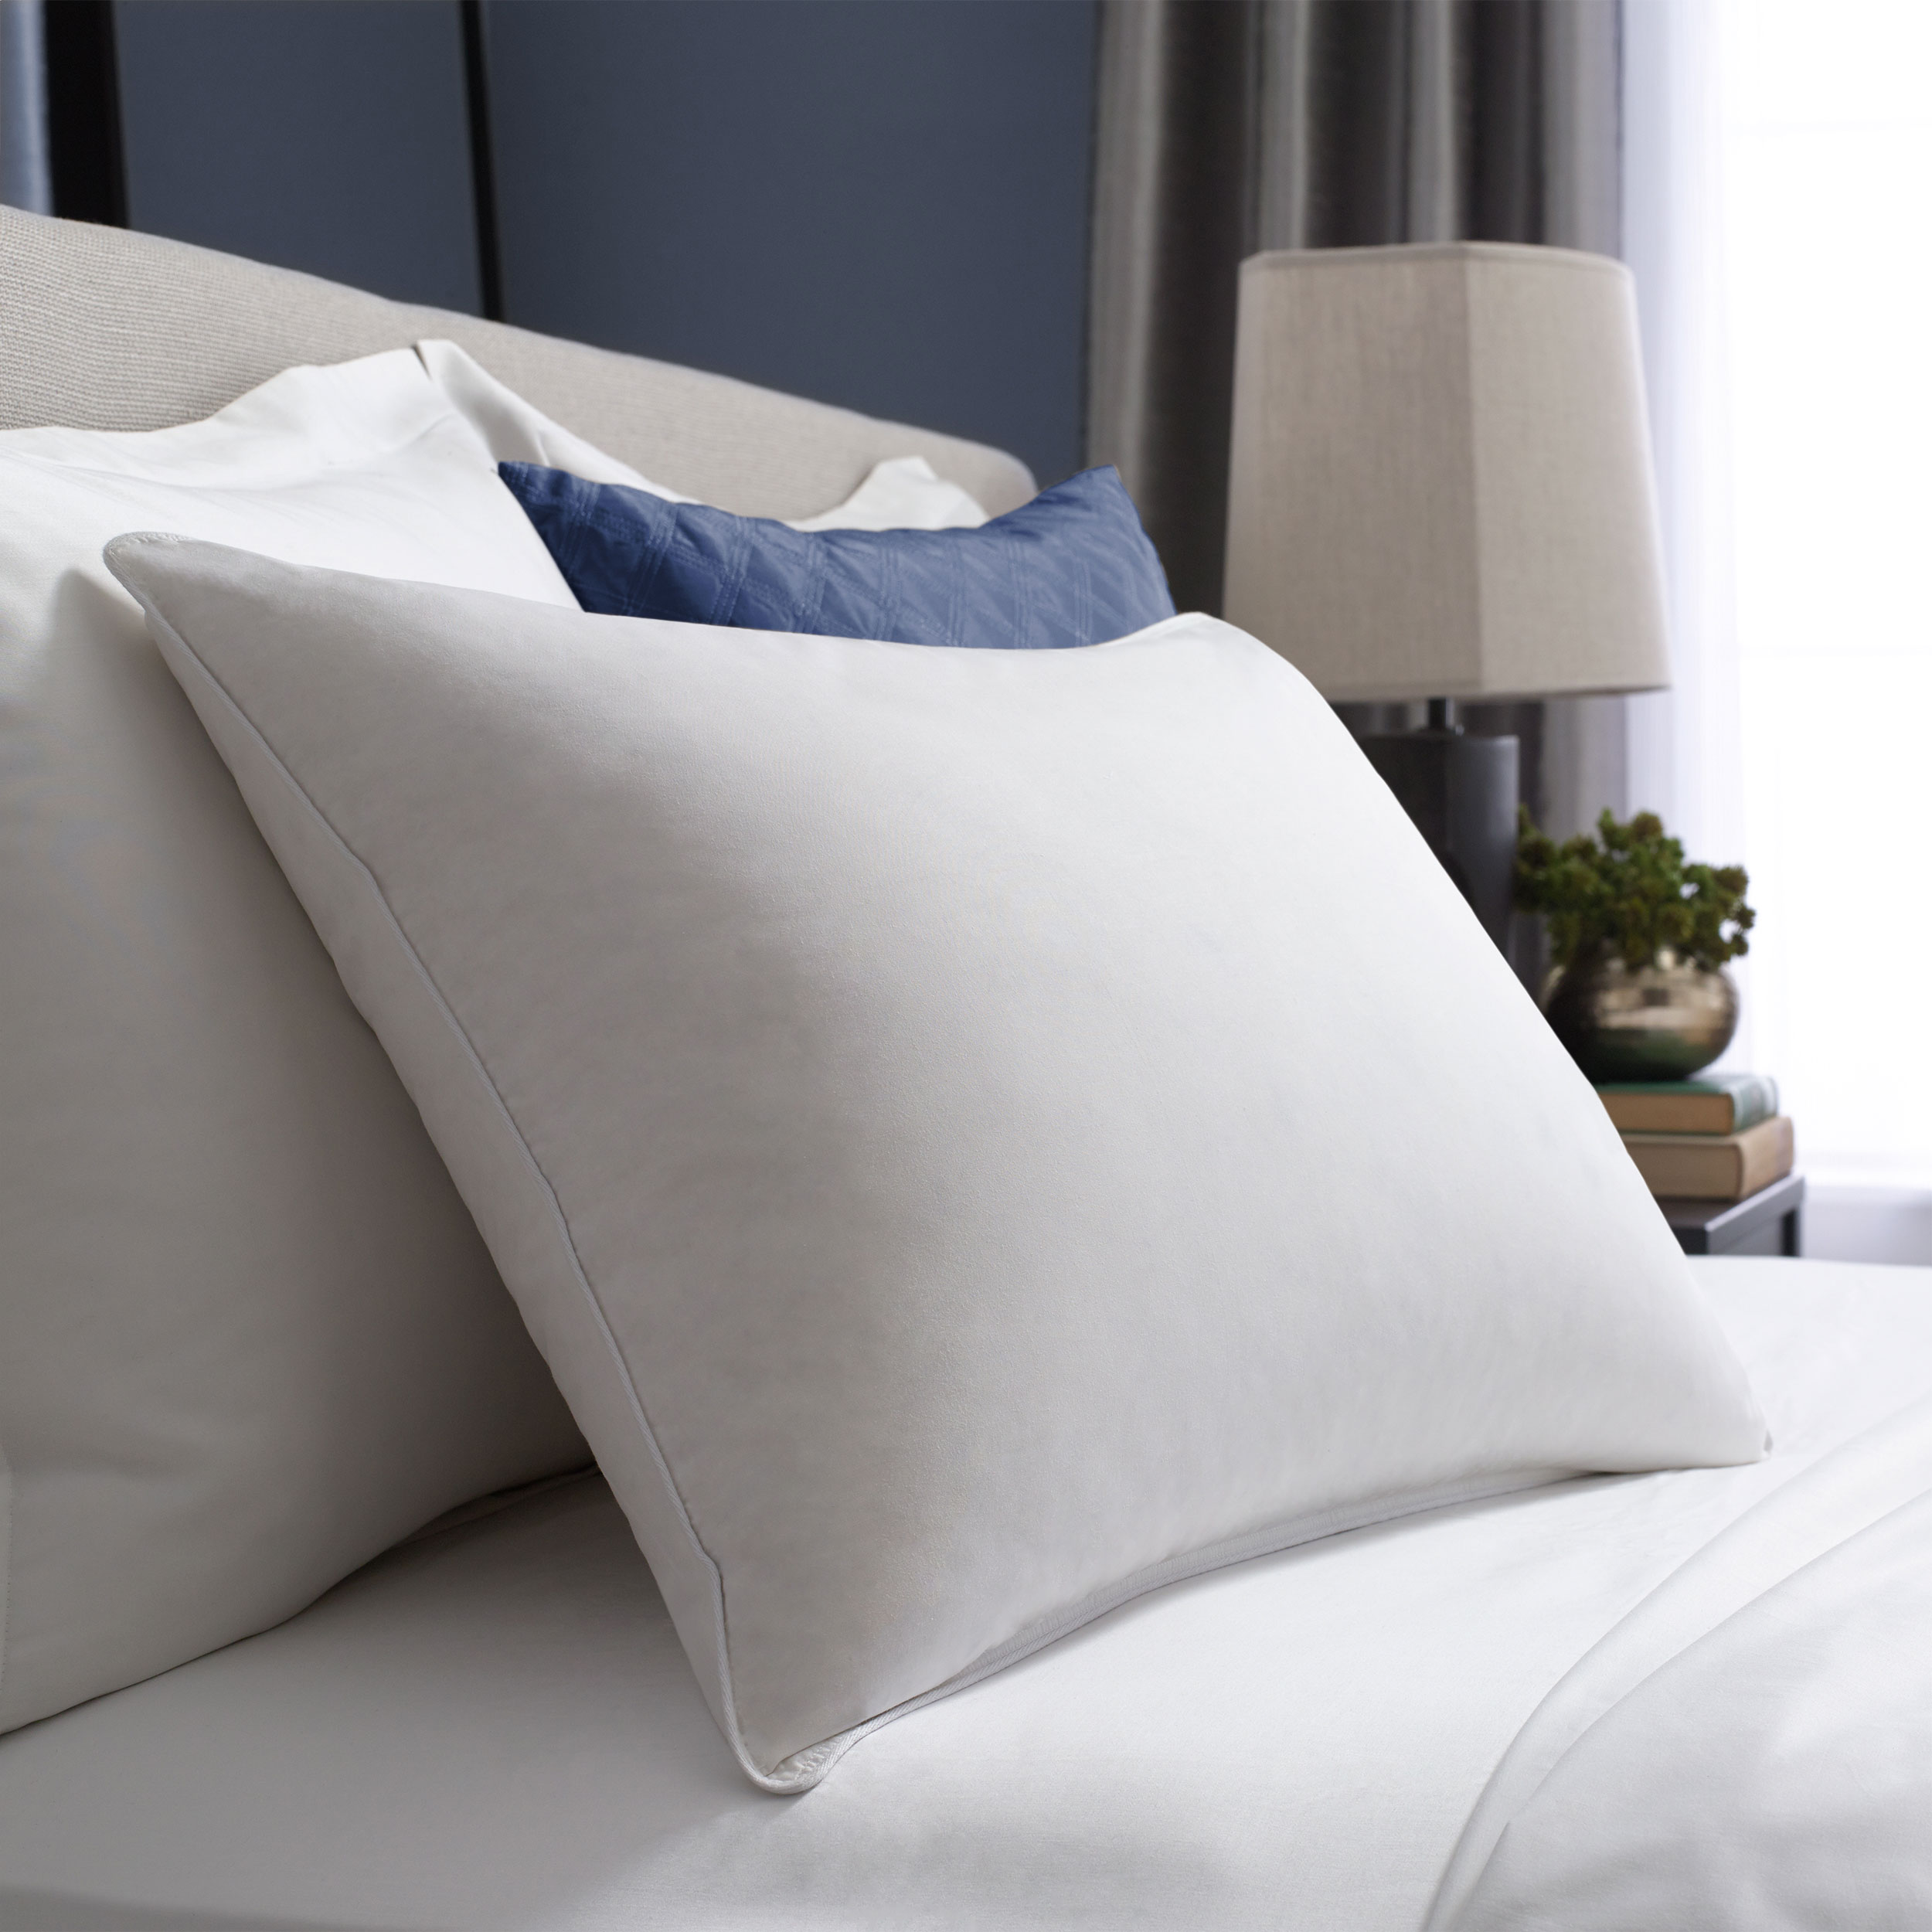 Pacific Coast Hotel White Goose Down Luxury Pillow